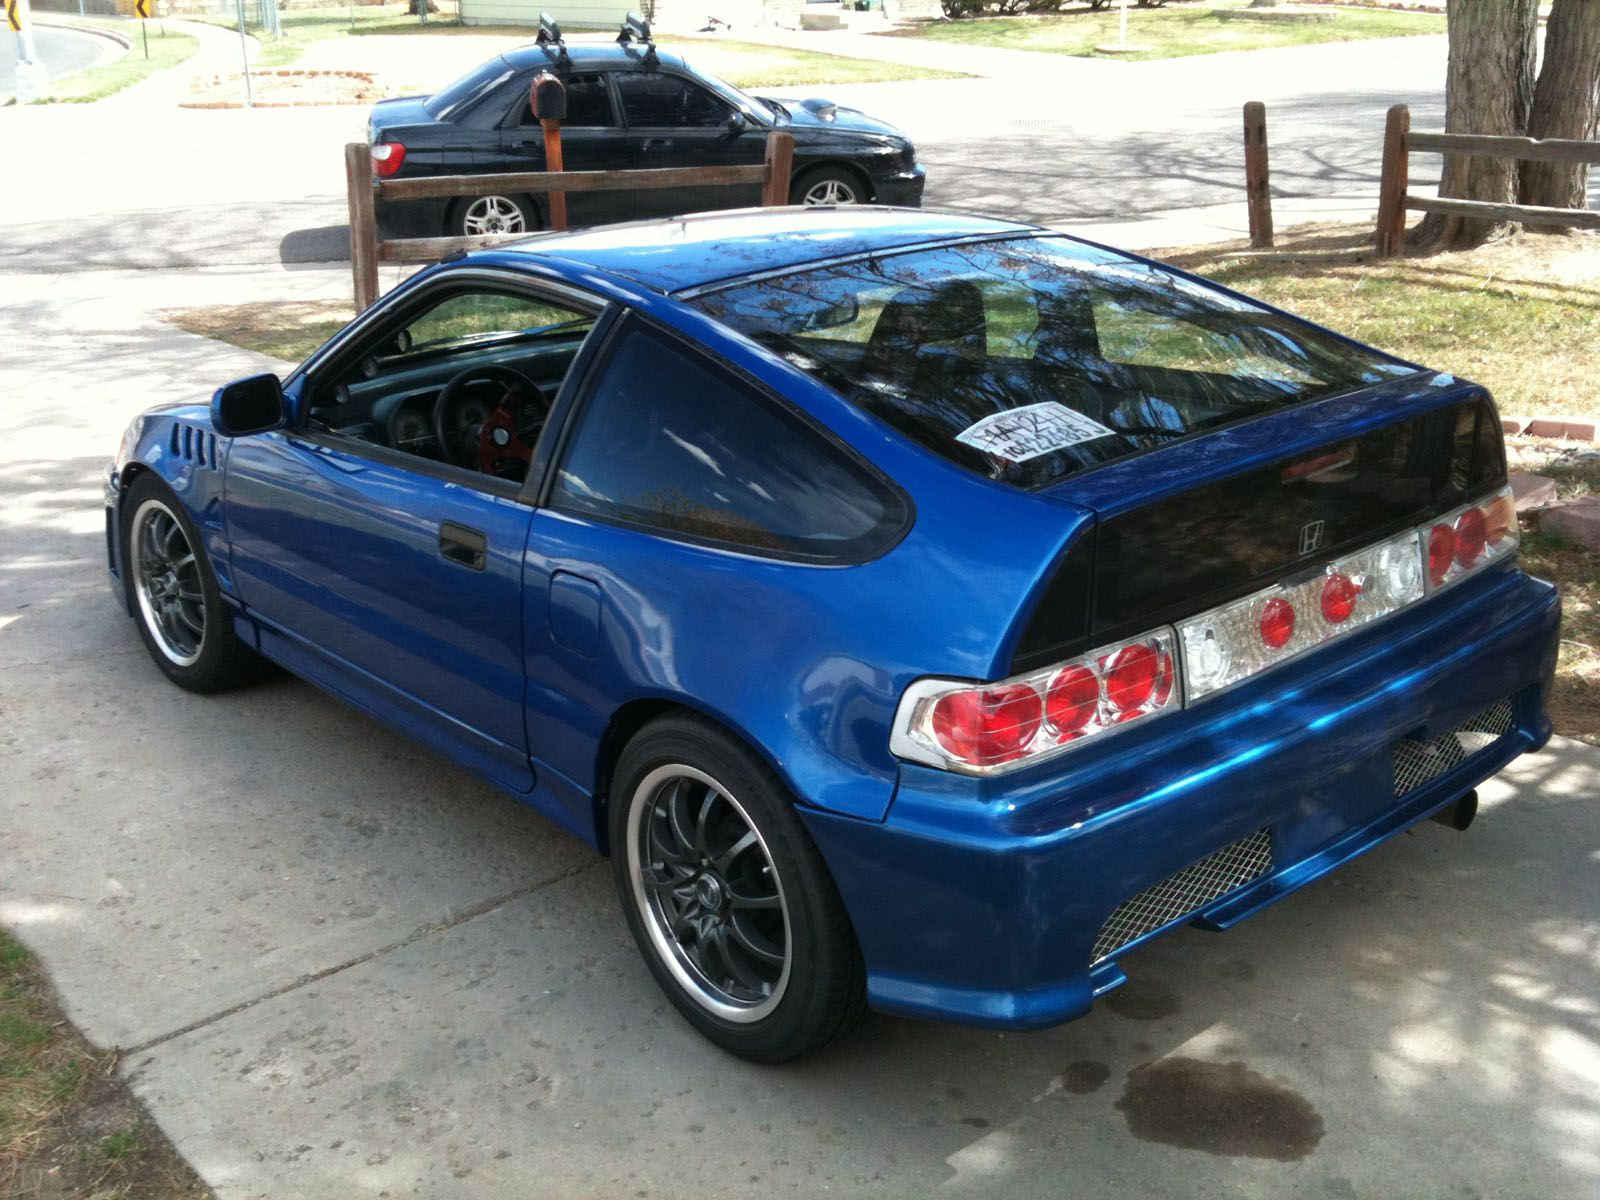 89 honda crx hatchback that is one of the sickest cars i have ever seen i cried a little. Black Bedroom Furniture Sets. Home Design Ideas